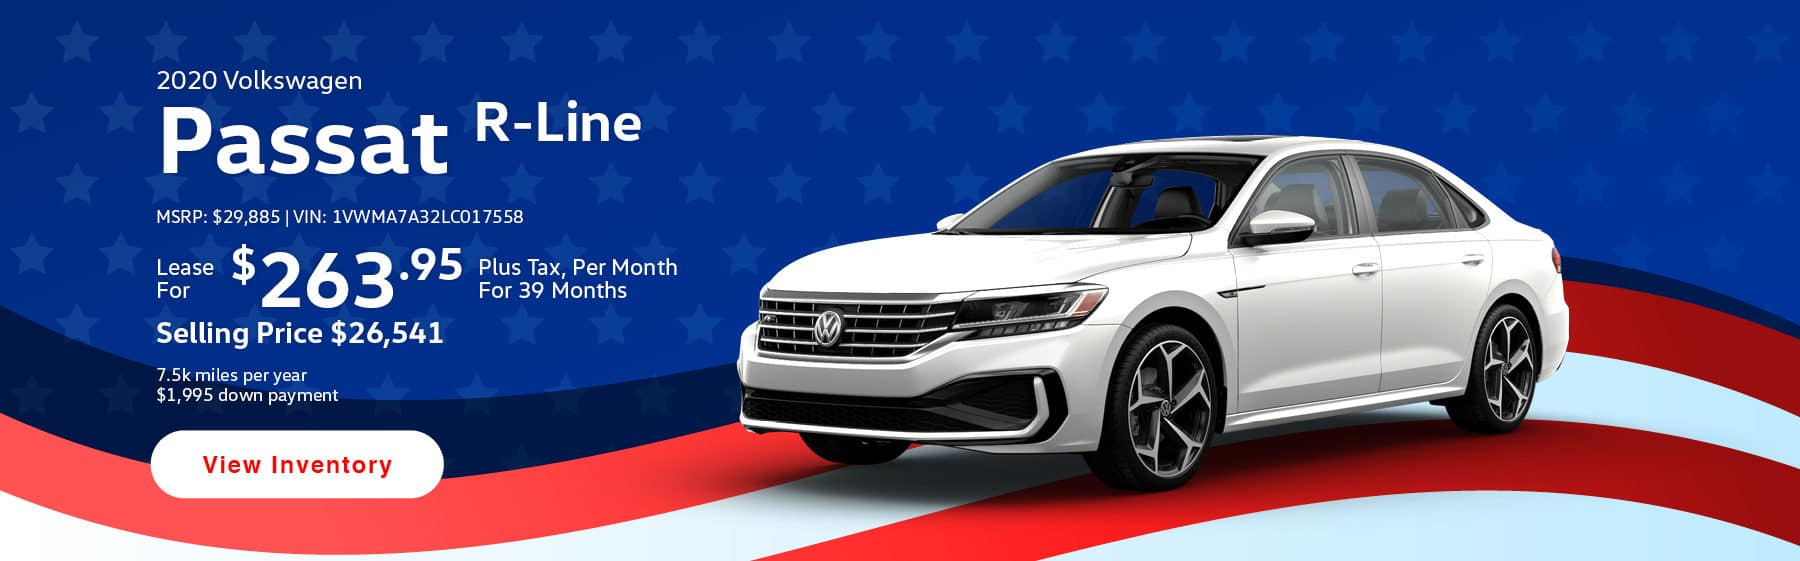 Lease the 2020 Passat R-Line for $263.95 per month, plus tax for 39 months.